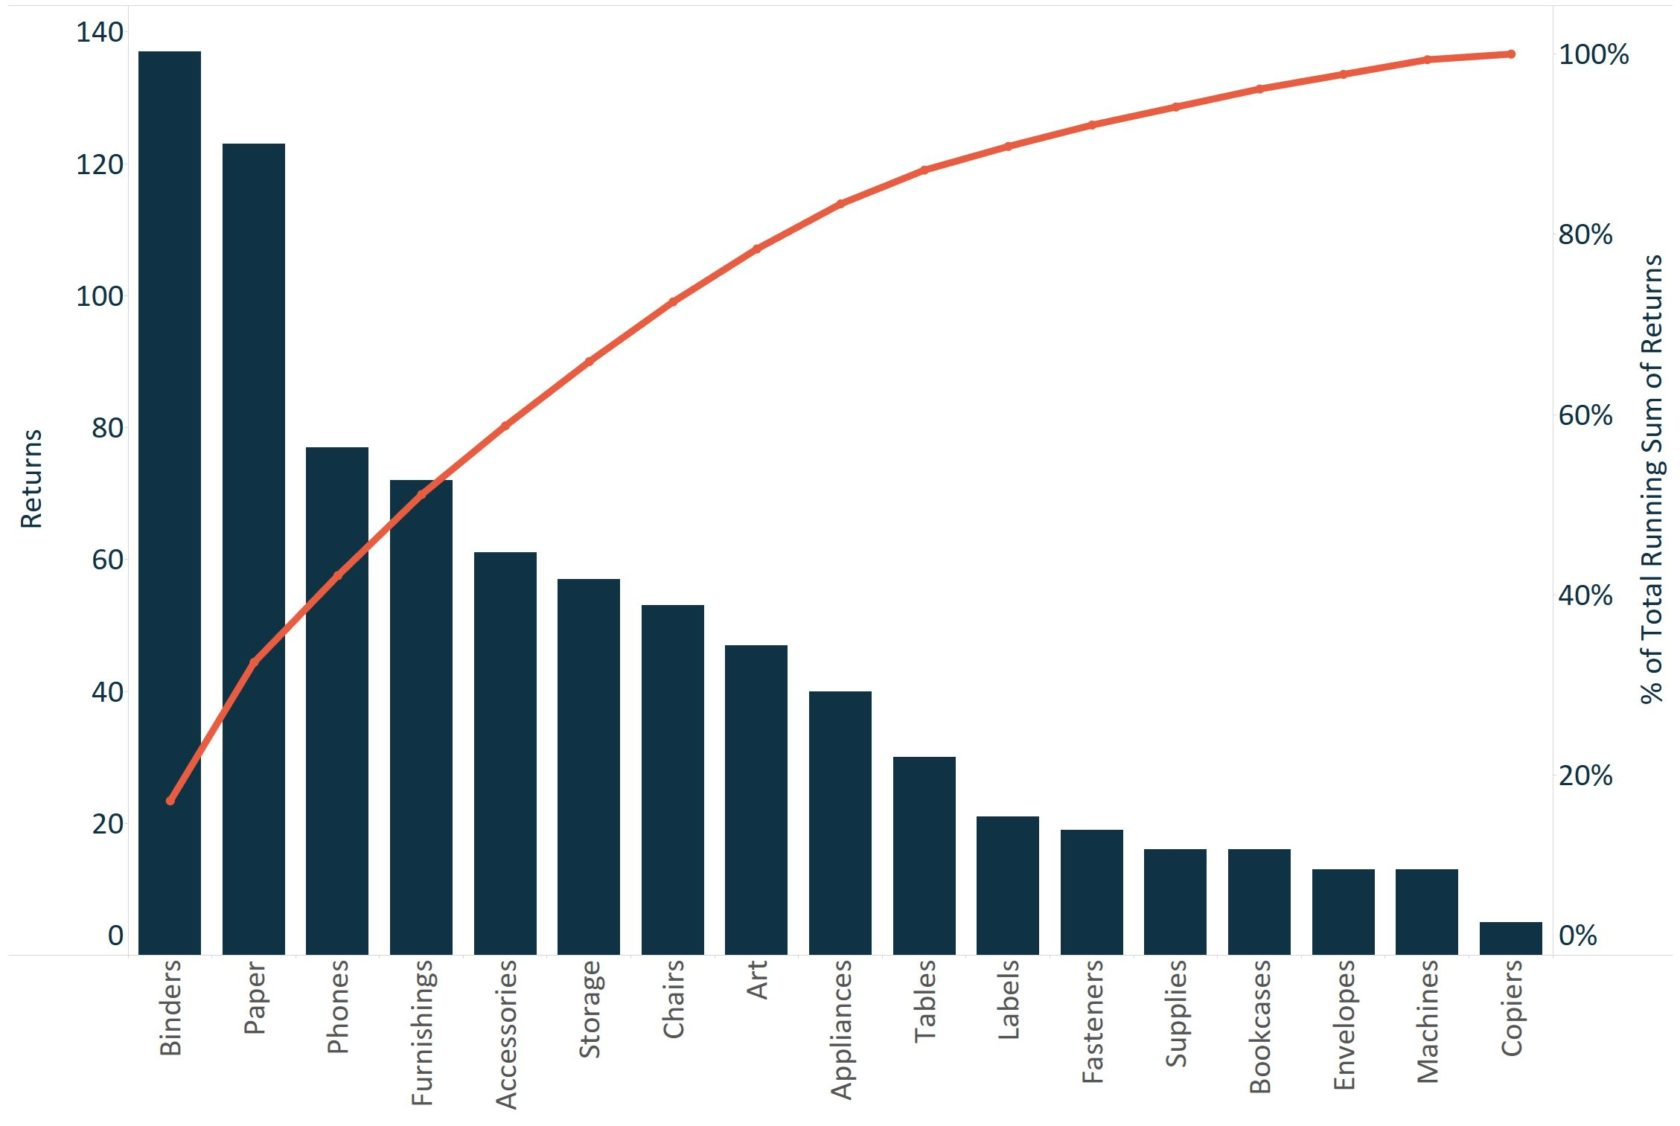 Tableau 201: How to Make a Pareto Chart